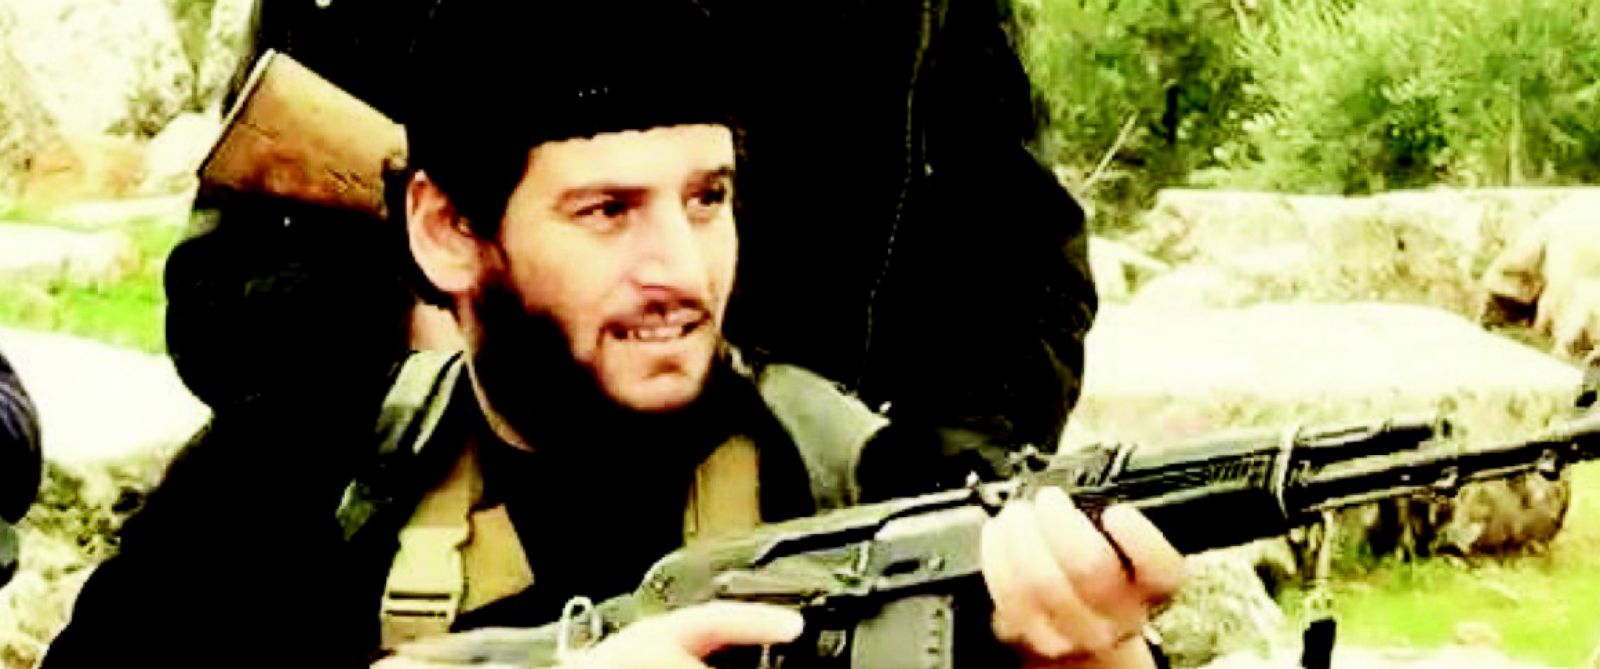 PHOTO: ISIS fighter identified in a July 2014 ISIS online magazine as Abu Muhammad Al-Andani.